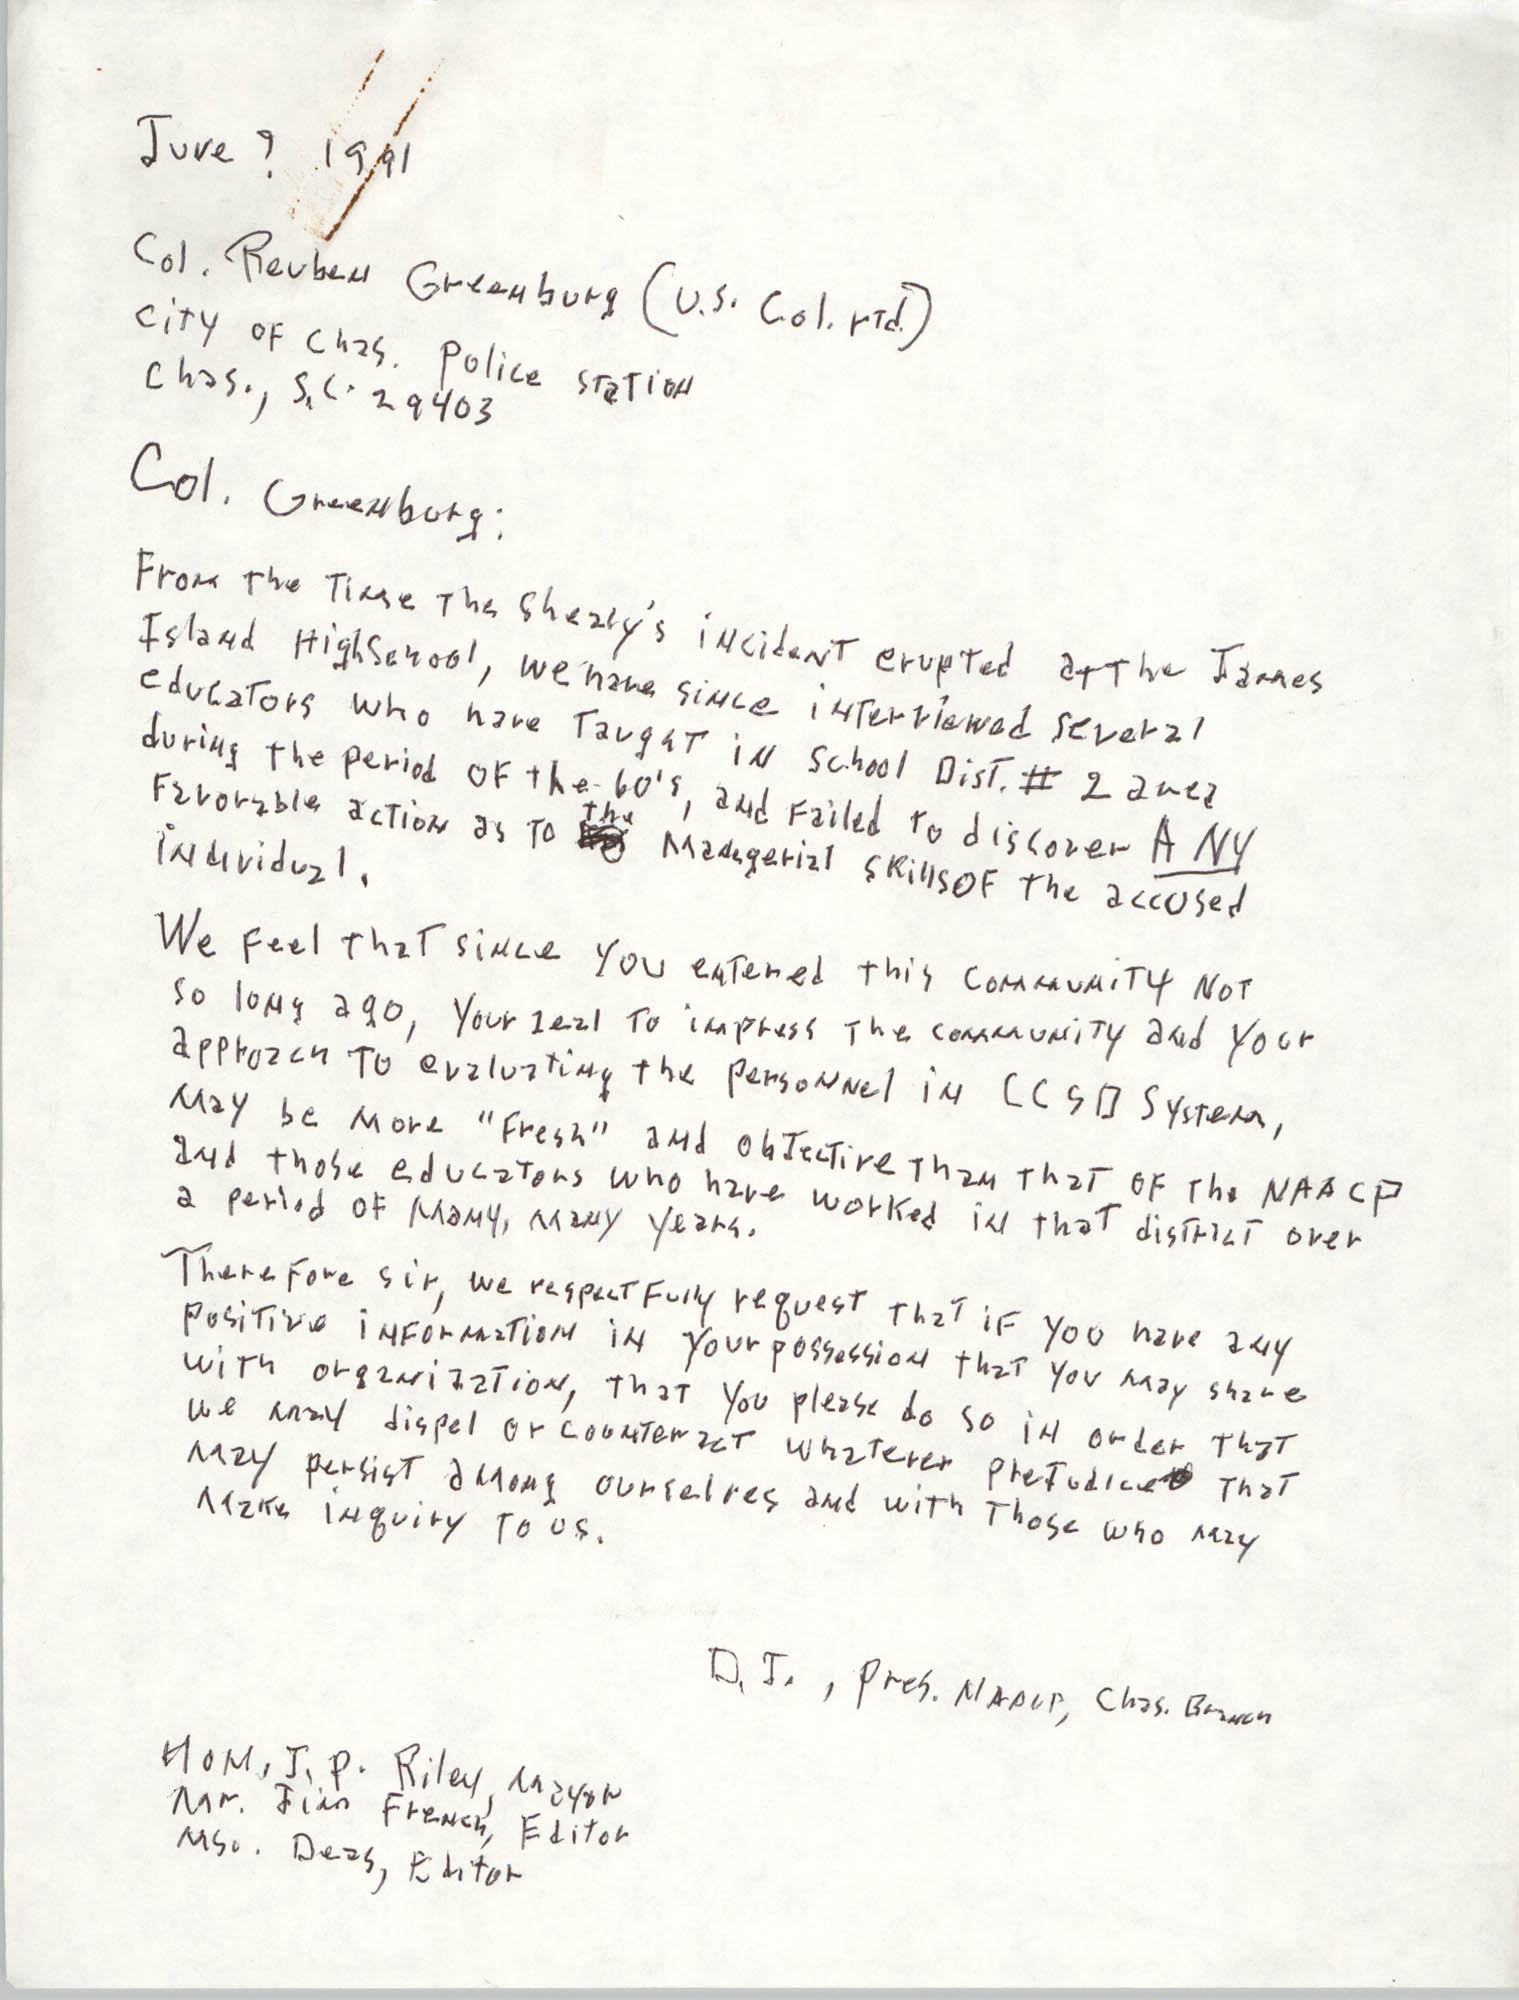 Letter from Dwight James to Reuben Greenburg, June 9, 1991